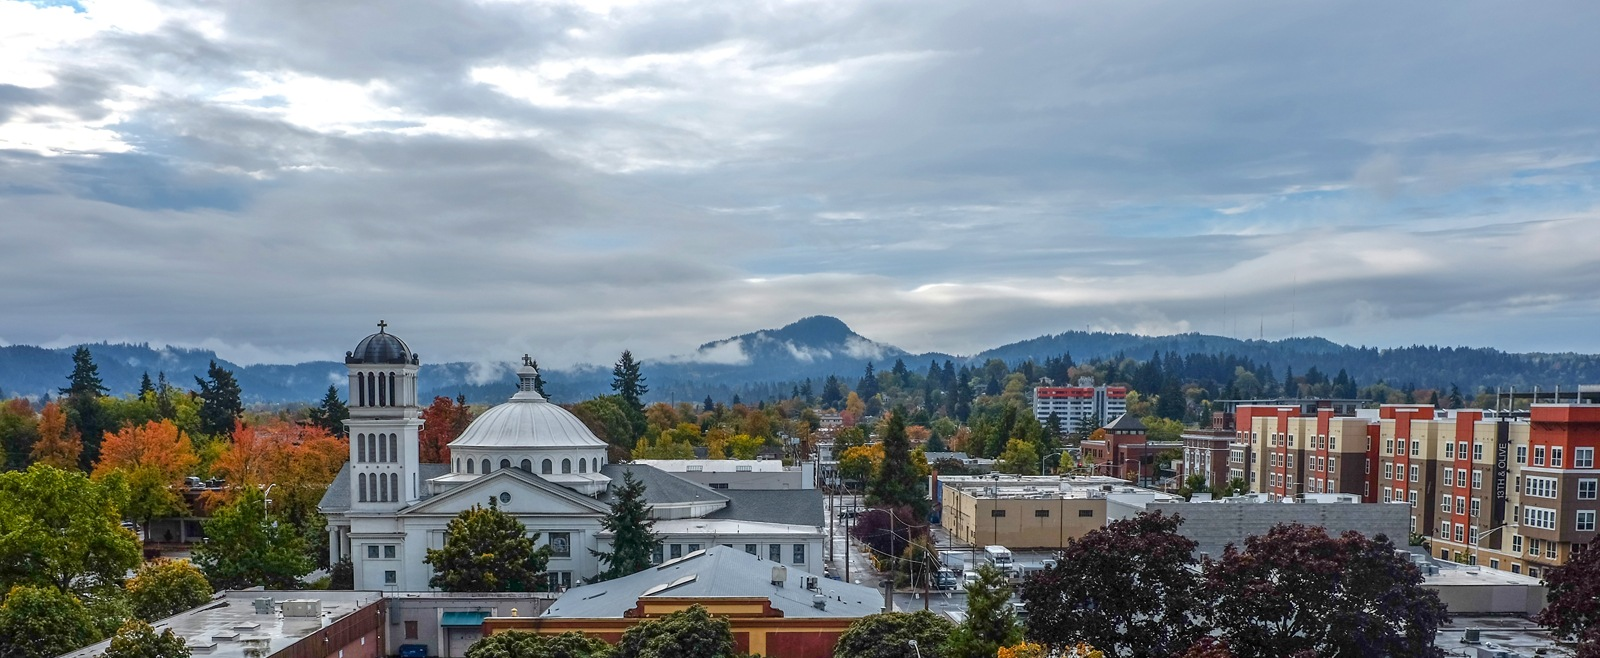 Cityscape of downtown Eugene, Oregon, hometown of Palo Alto Software.